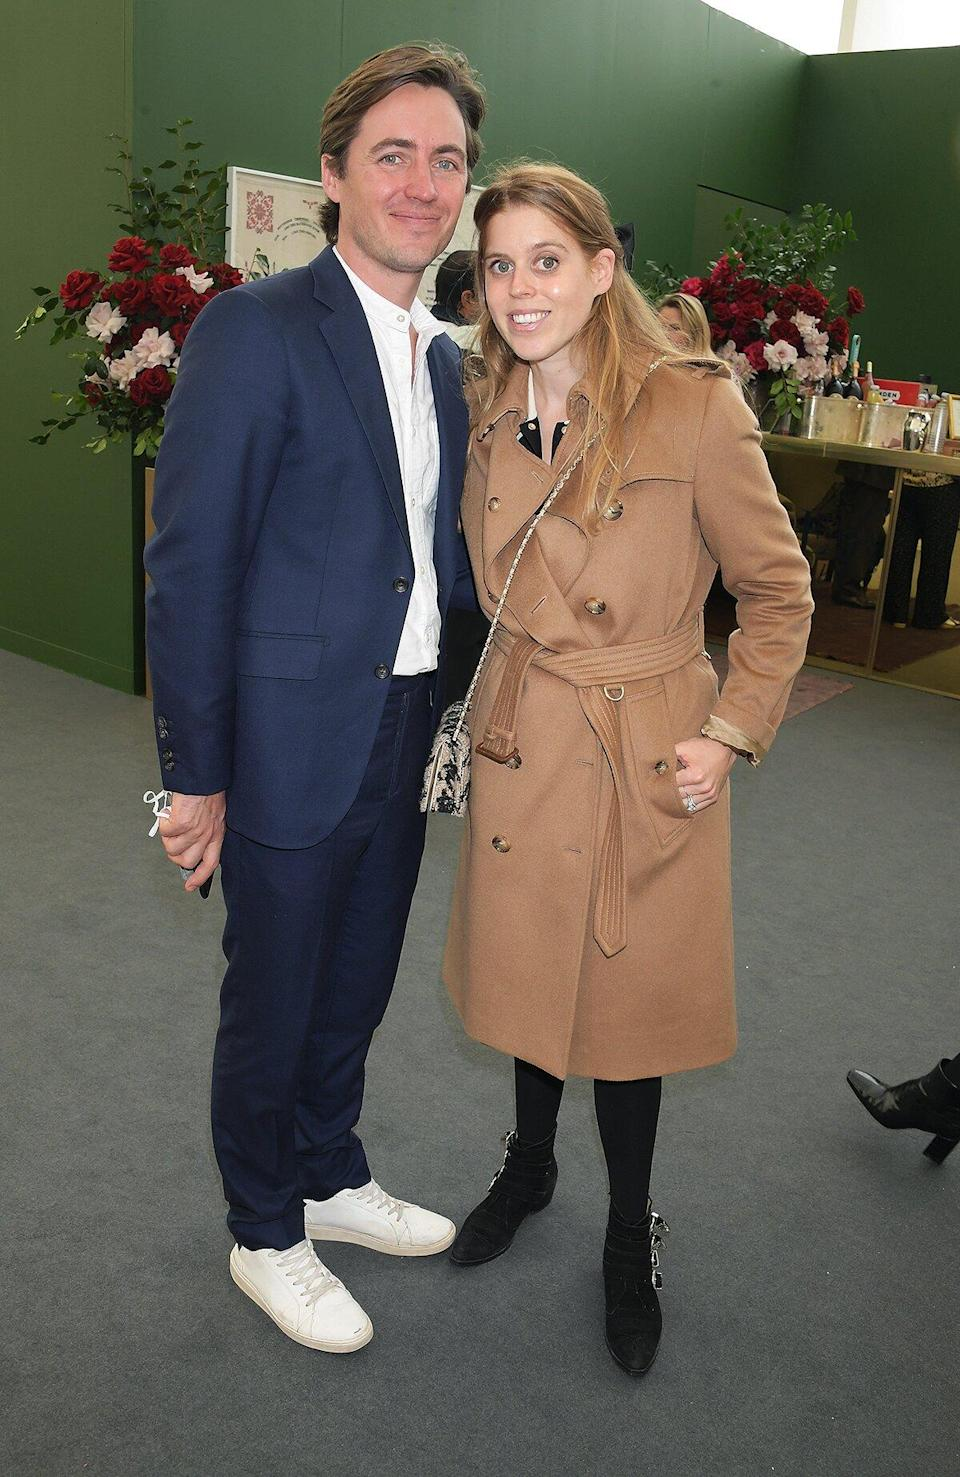 Edoardo Mapelli Mozzi and Princess Beatrice of York attend Ned's Club Lounge at Frieze London Art Fair at Regent's Park on October 13, 2021